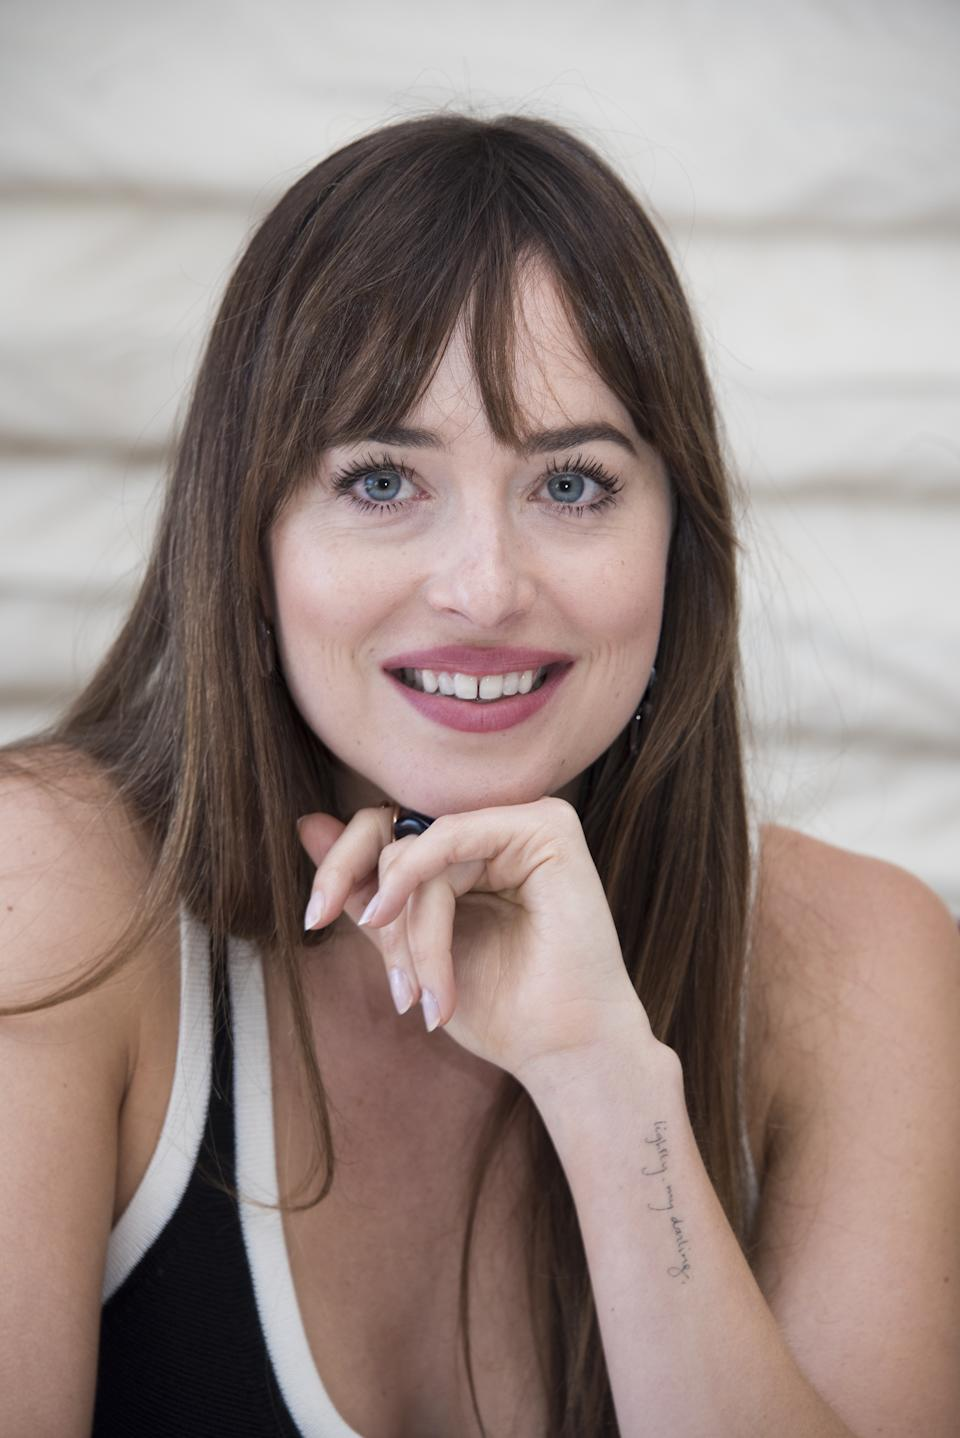 """HOLLYWOOD, CA - SEPTEMBER 23:  Dakota Johnson at the """"Bad Times at the El Royale"""" Press Conference at the Hollywood Roosevelt Hotel on September 23, 2018 in Hollywood, California.  (Photo by Vera Anderson/WireImage)"""